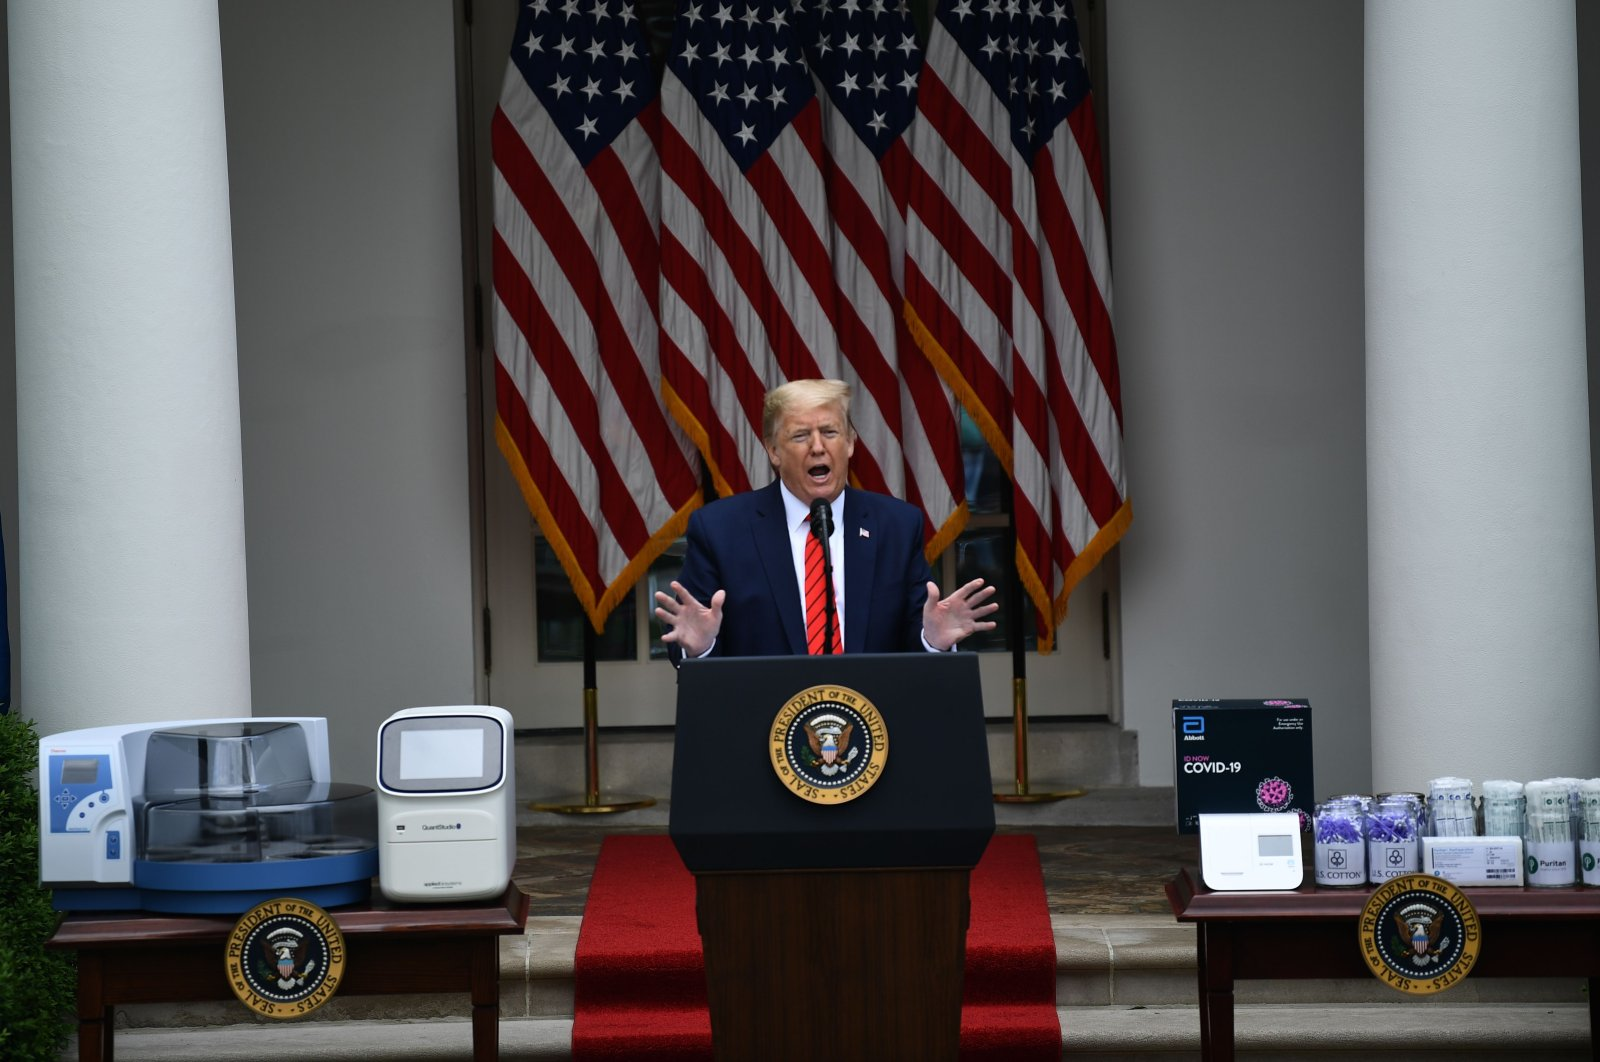 US President Donald Trump speaks during a news conference on the novel coronavirus, COVID-19, in the Rose Garden of the White House in Washington, DC on May 11, 2020. (AFP Photo)